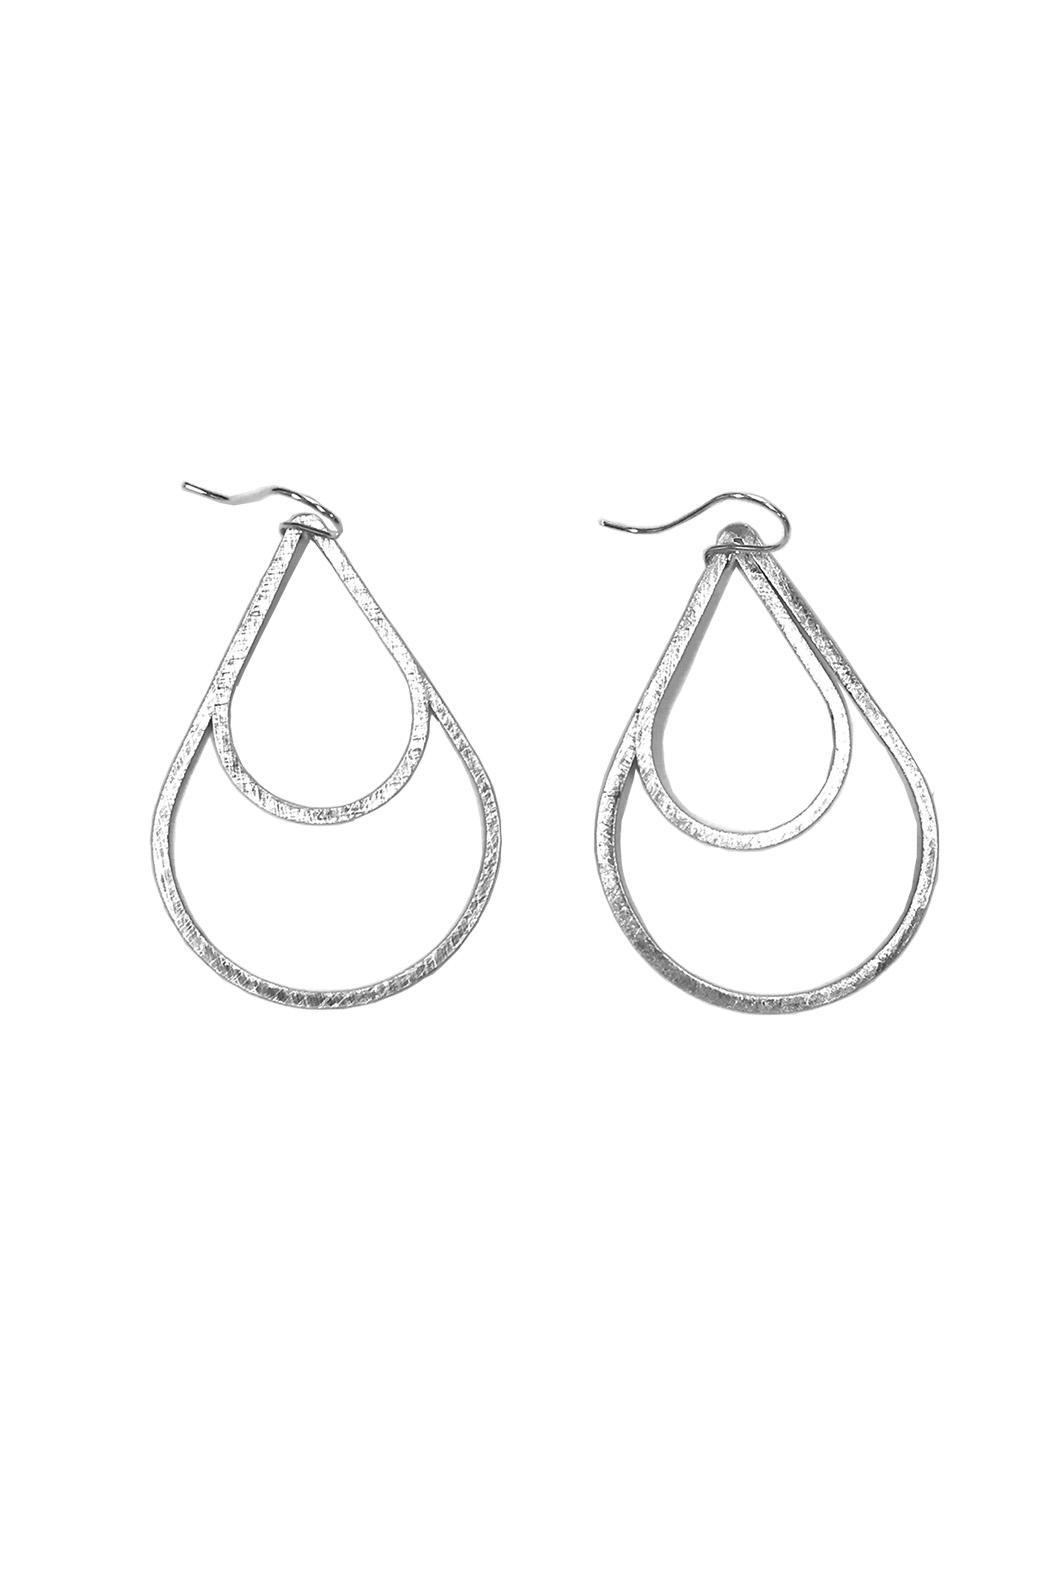 Zina Kao Hoop Earrings - Main Image